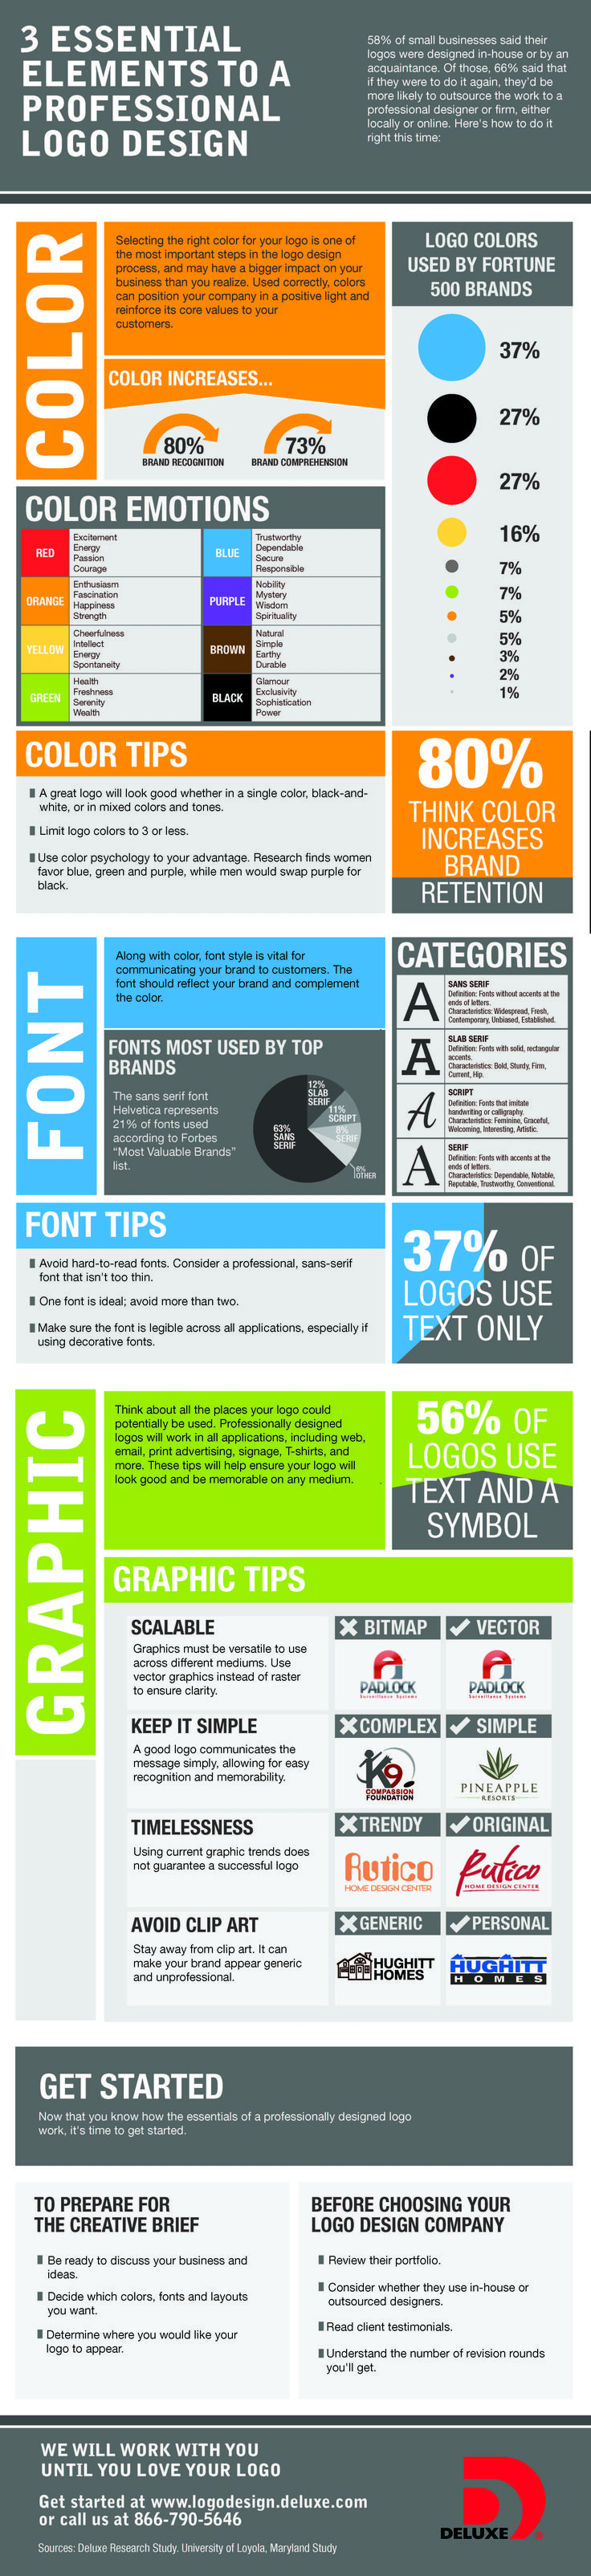 What does your logo say about your business? A recent study and infographic created by our parent company Deluxe Corporation reveals the impact your logo design makes. http://arcreactions.com/services/social-media/